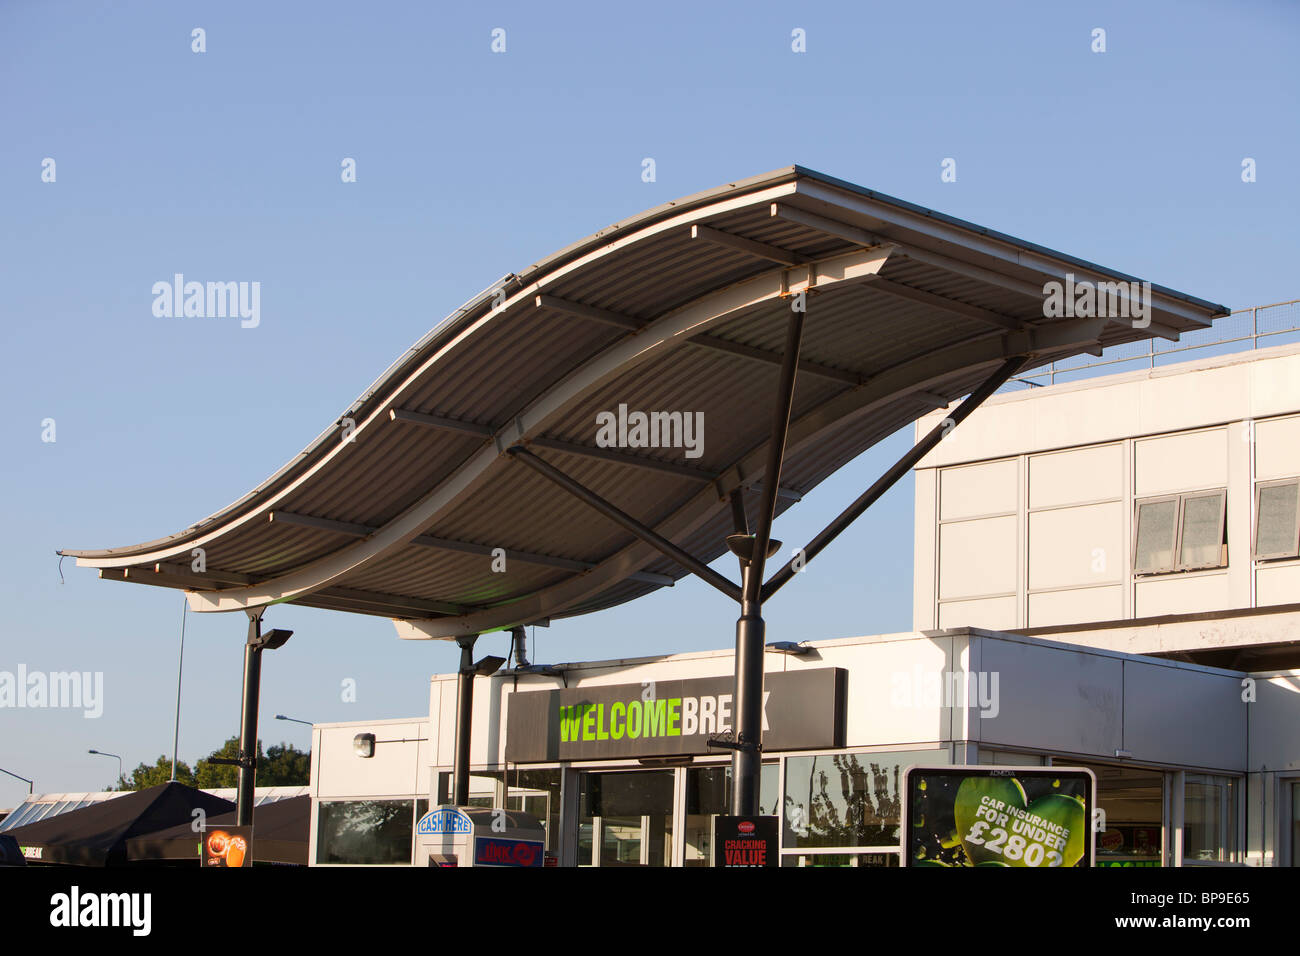 A welcome Break motorway service station on the M6 in Lancashire, UK. Stock Photo